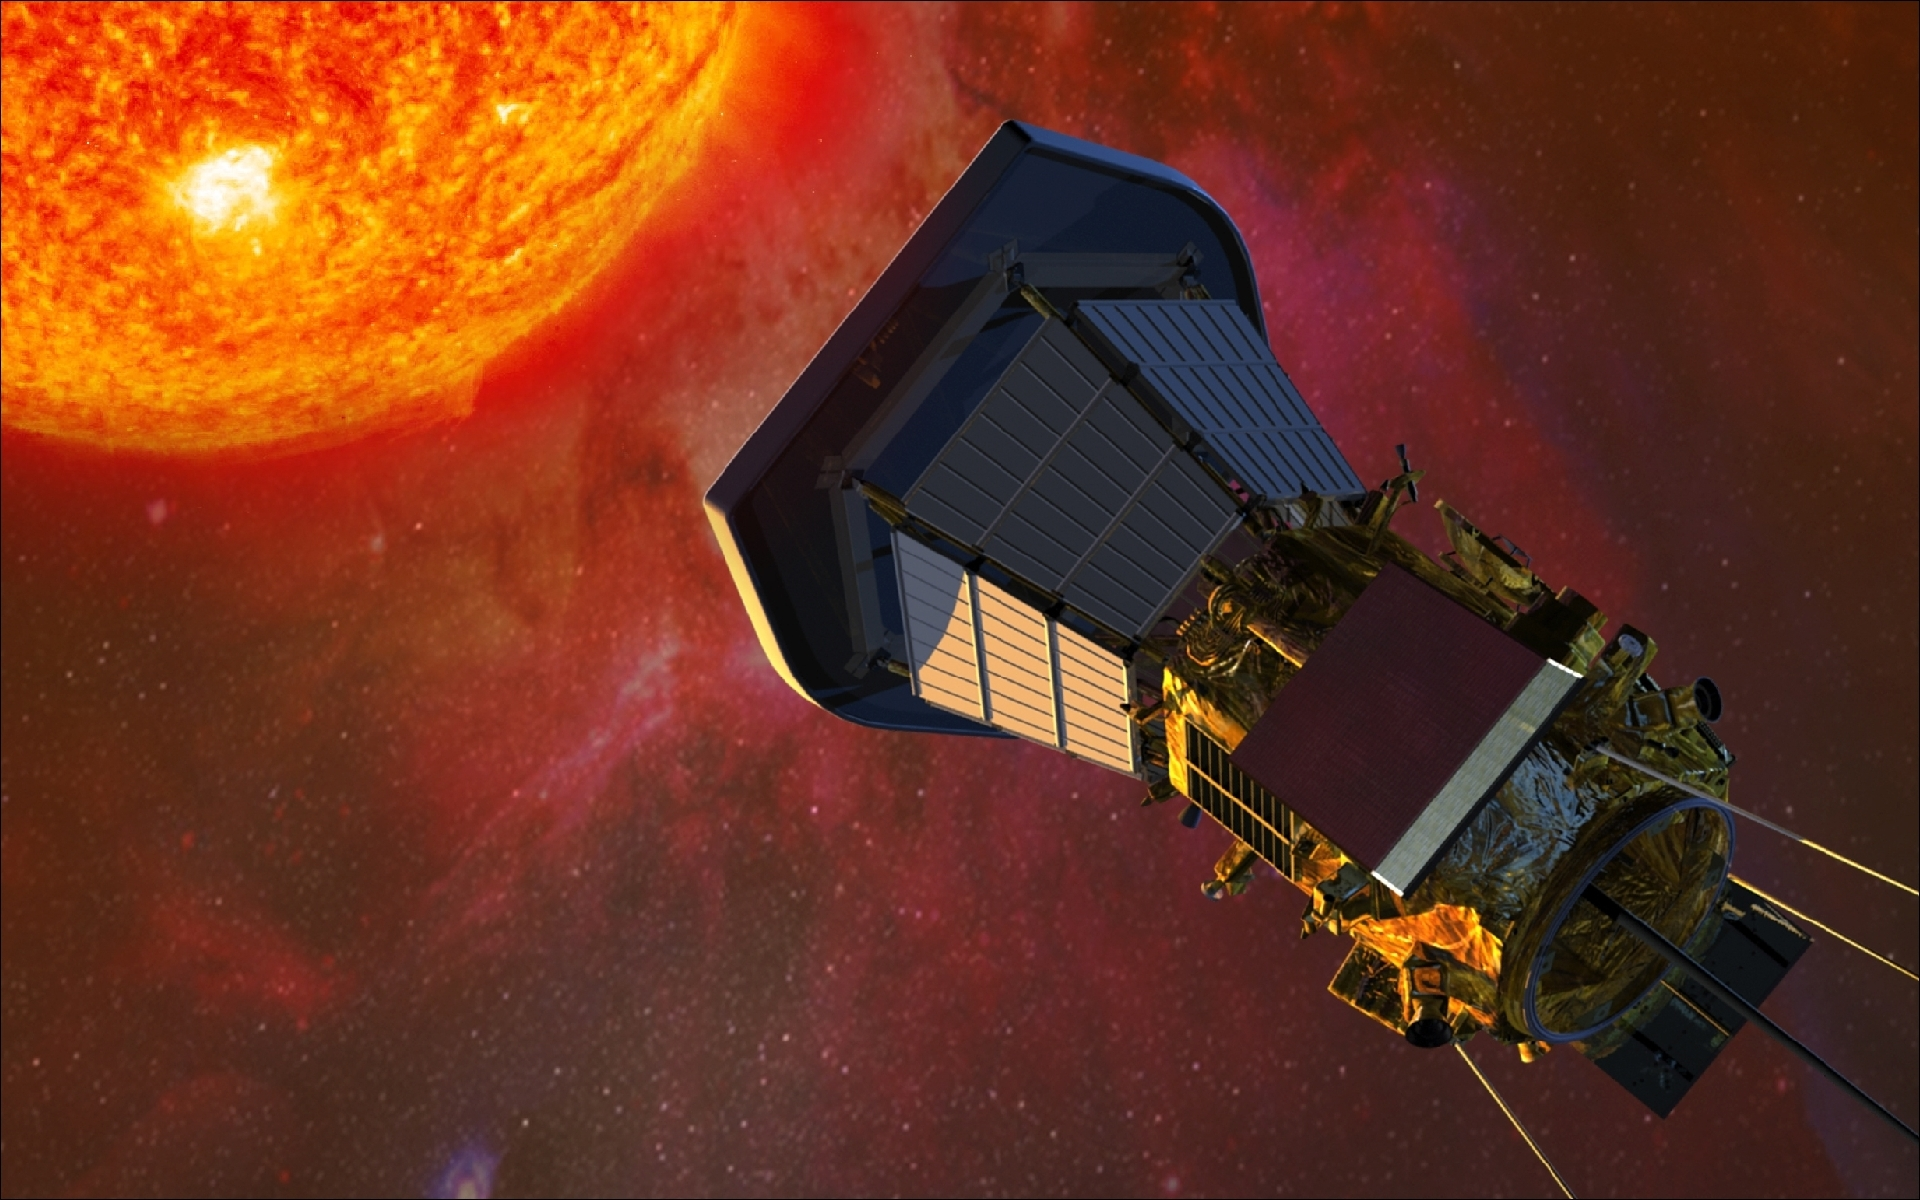 nasa sun mission - HD 1680×1050